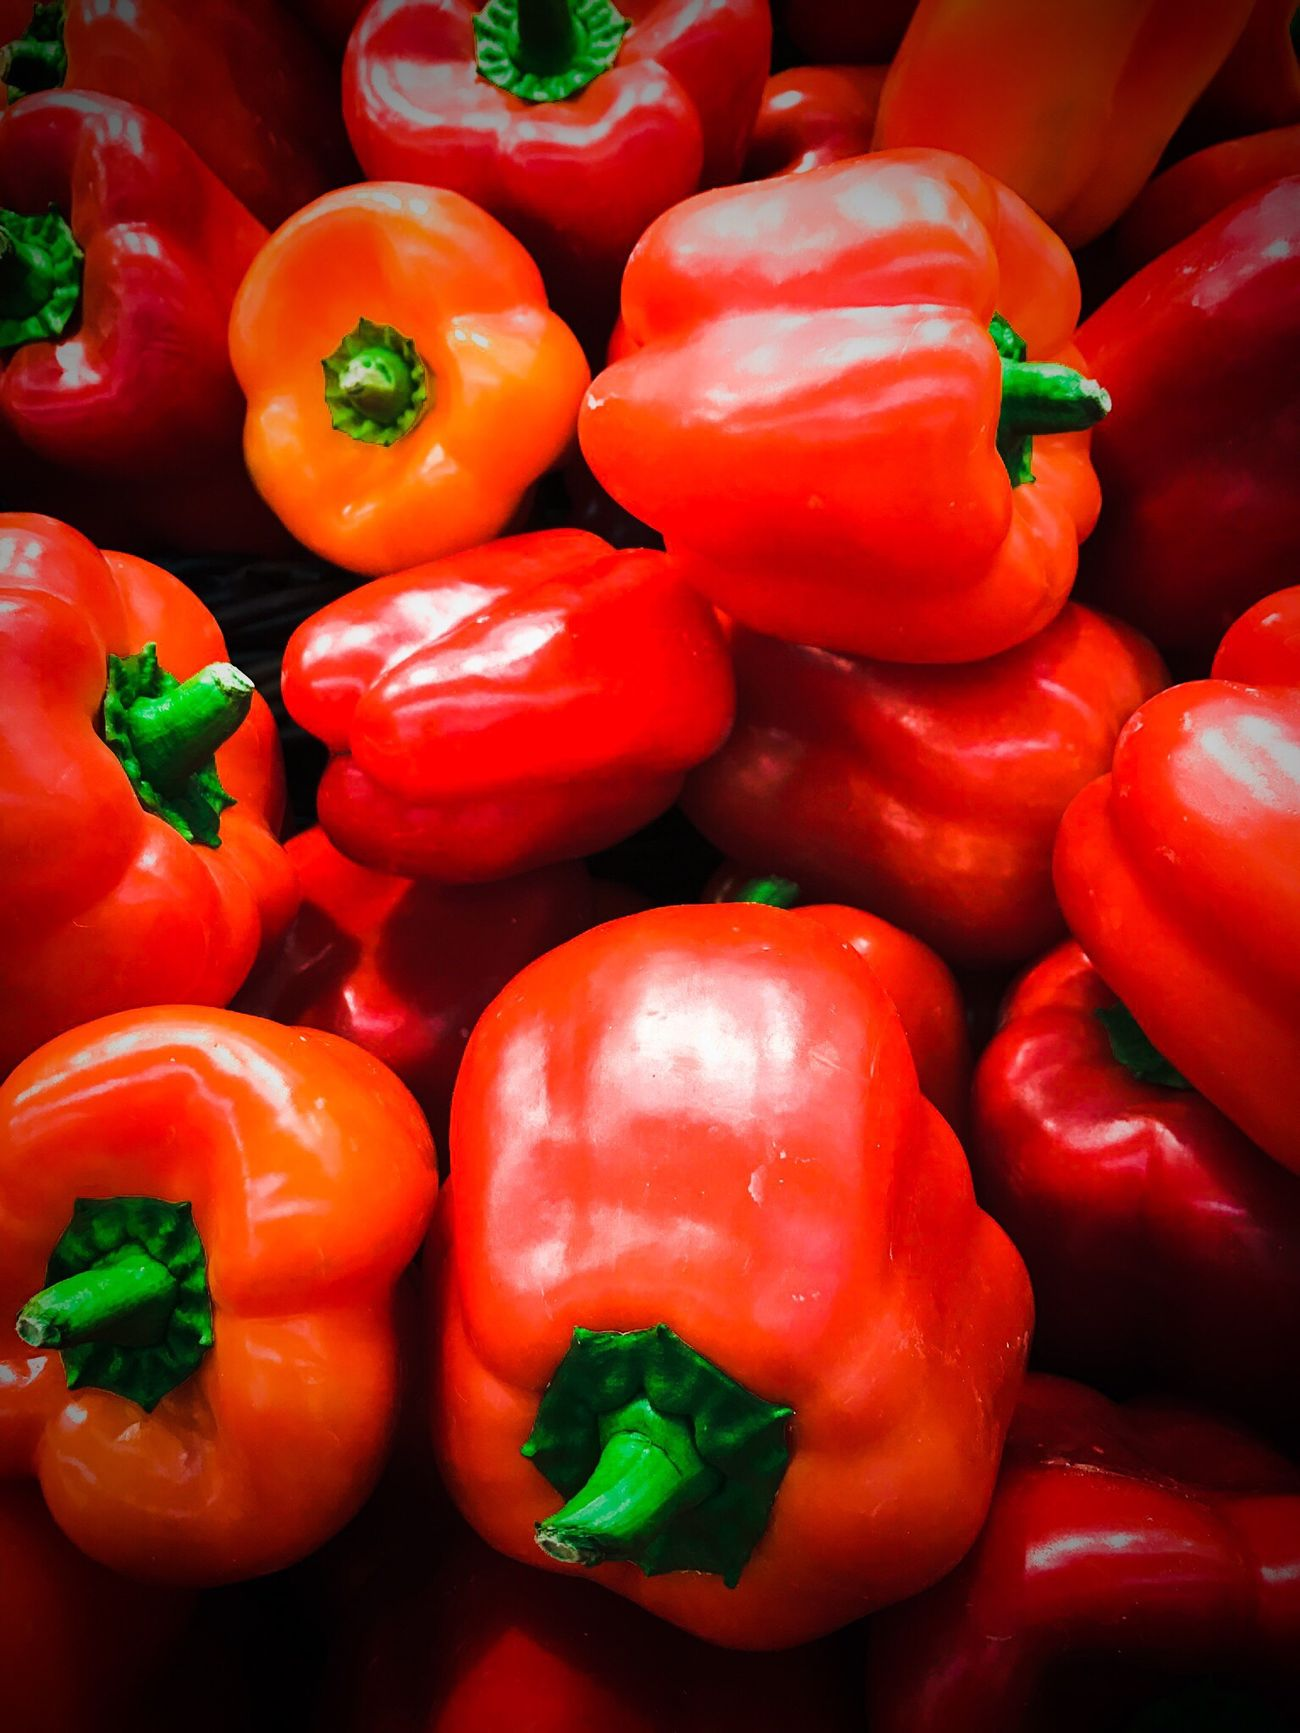 fresh tasty red bell peppers (capsicums) closeup on a stall. Red Vegetable Freshness Food And Drink Healthy Eating Food No People Close-up Backgrounds Outdoors Day Capsicum Pepper Red Red Bell Peppers Bell Pepper Healthy Food Healthy Salad Fresh Produce Fresh Diet Dietfood